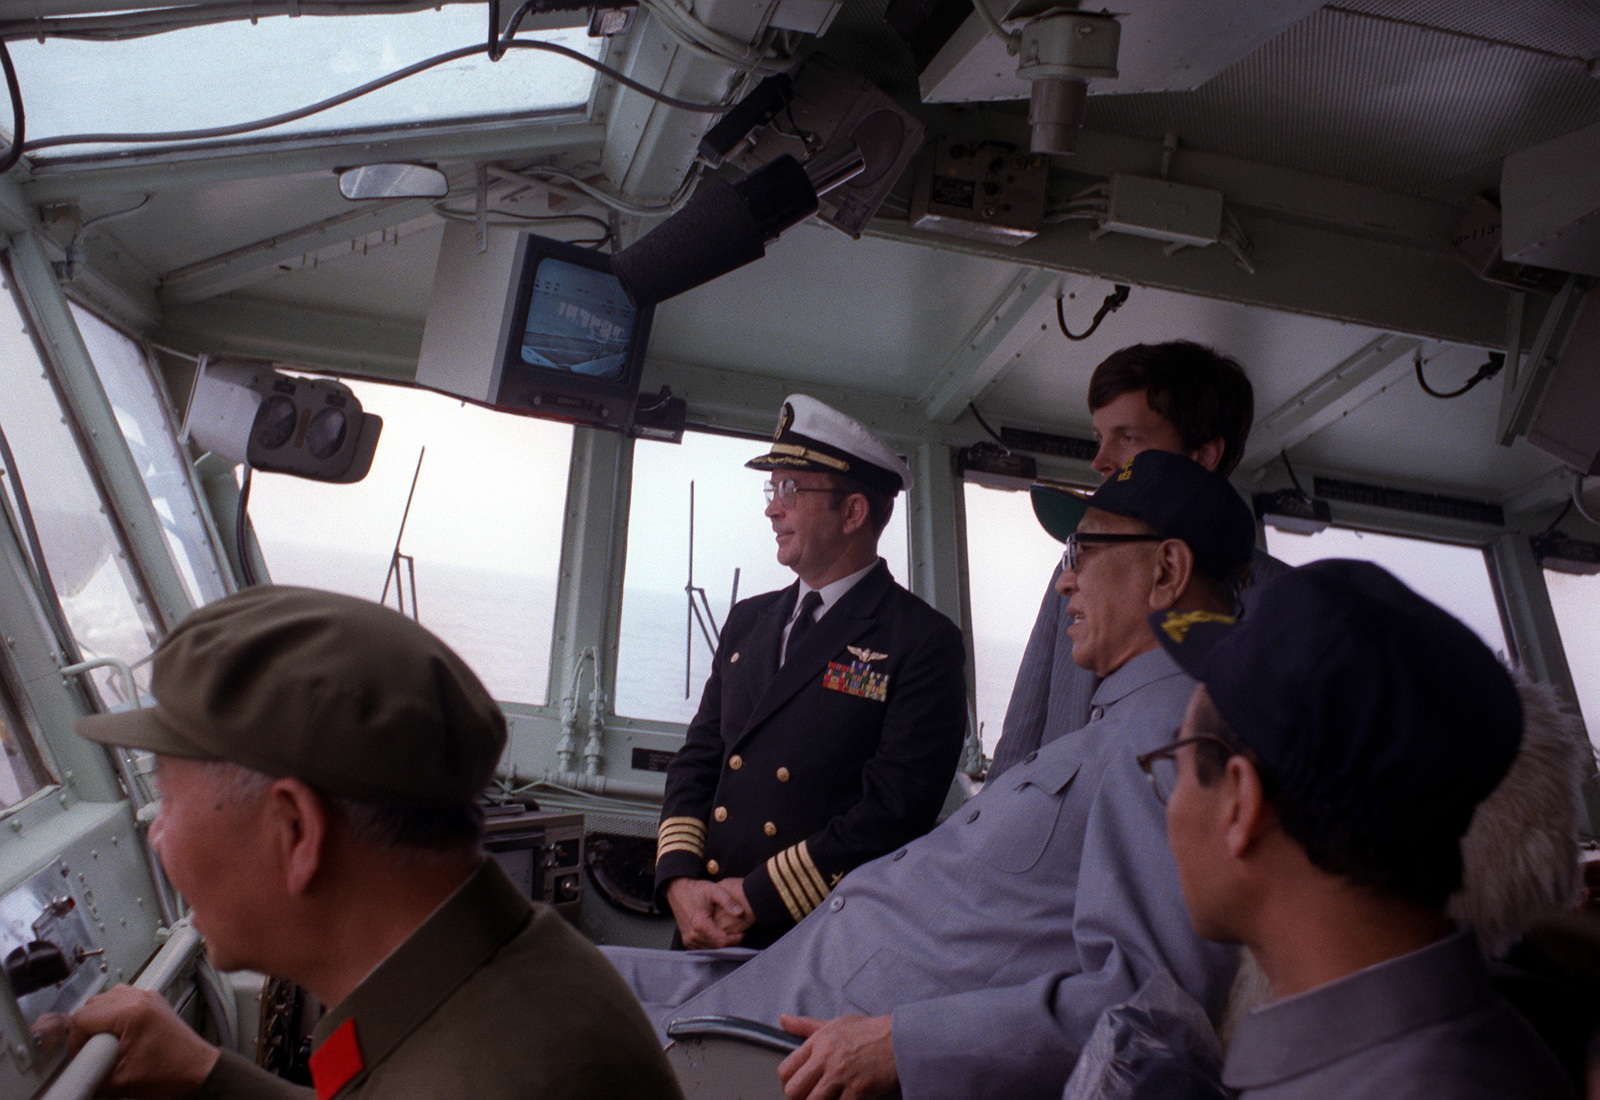 Vice Premier Geng Biao, People's Republic of China, sits in the captain's chair during his tour of the aircraft carrier USS RANGER (CV-61). The ship's captain, CAPT Roger Box, is standing to his right